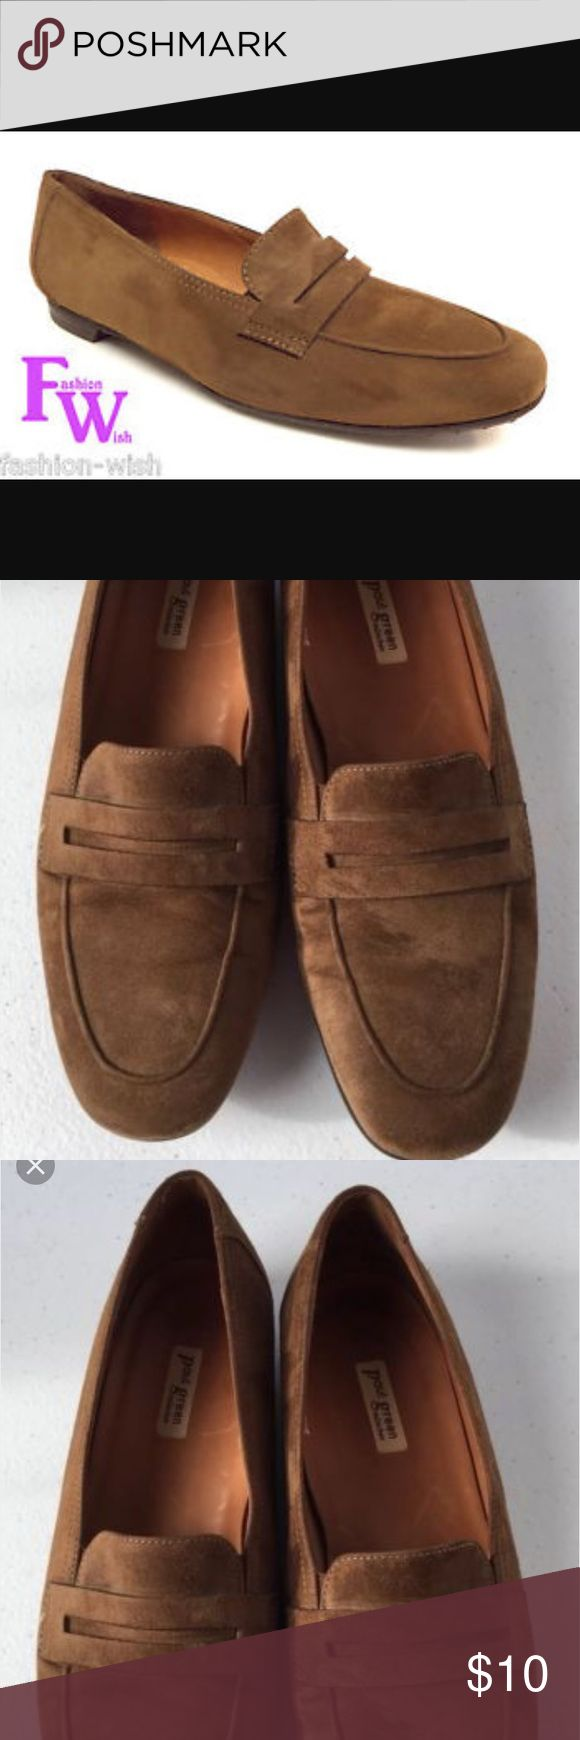 Paul Green Brown Suede Penny Loafers Never worn! Paul Green Brown Suede Penny Loafers. Size 8. Comfortable. True to size Paul Green Shoes Flats & Loafers